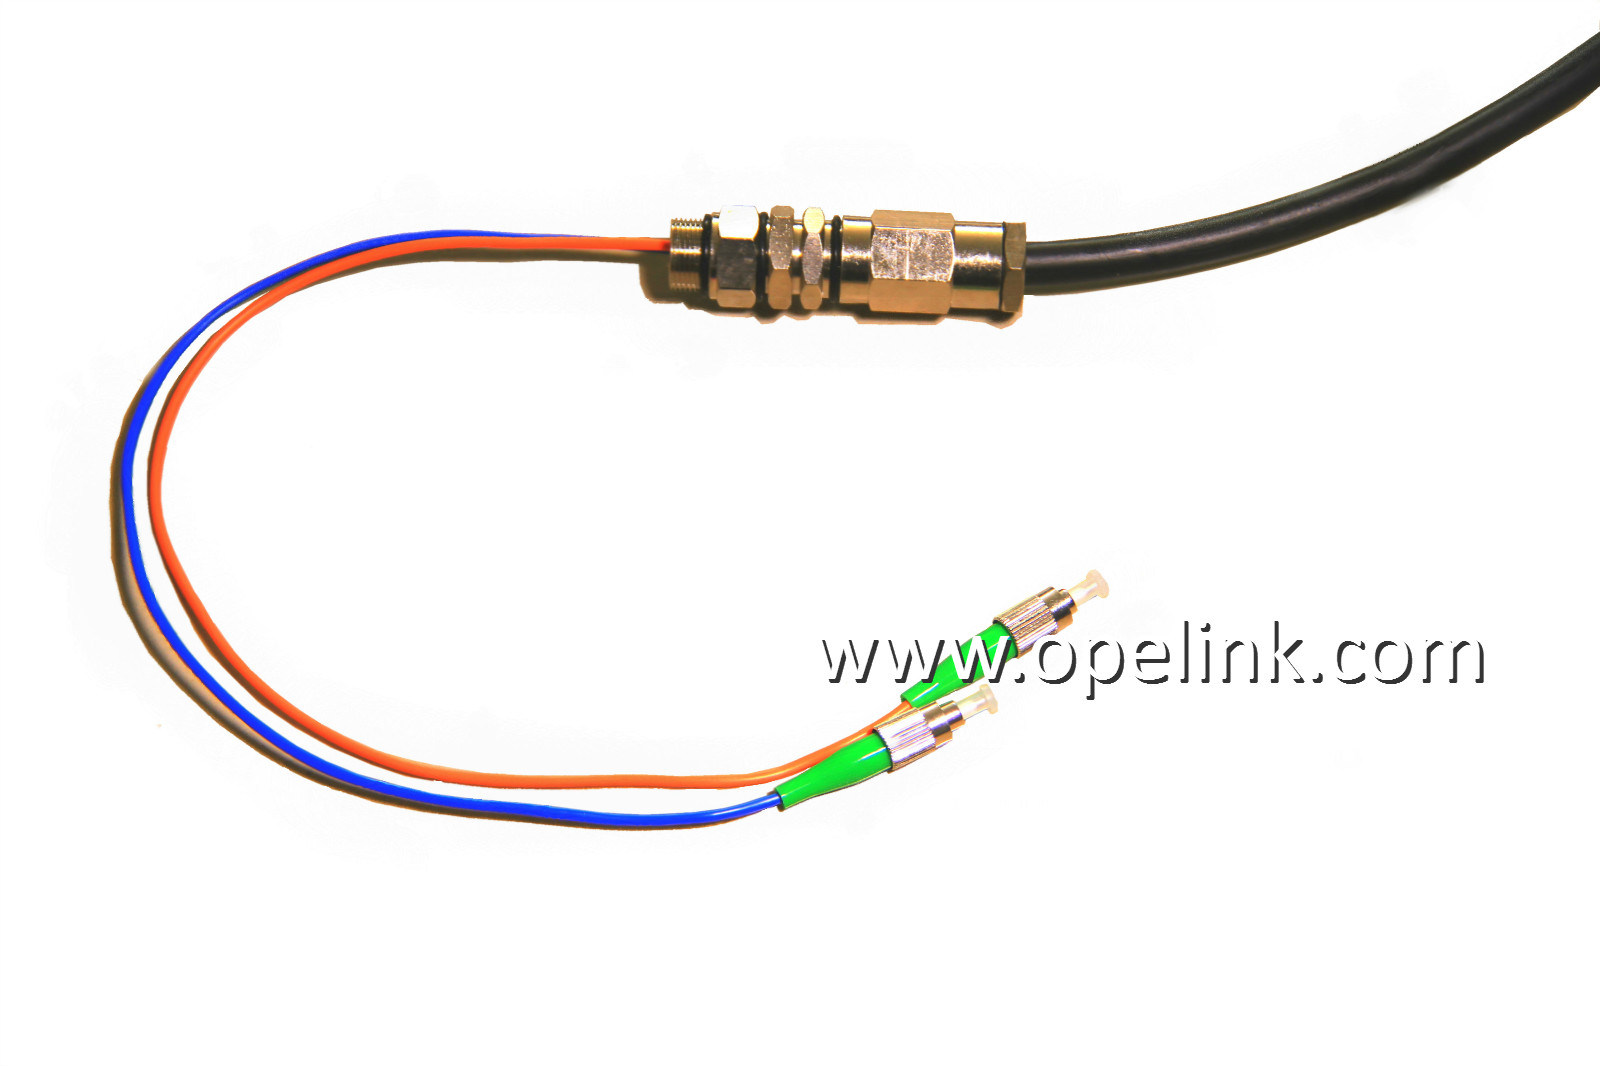 Optical Fiber Waterproof Patch Cord Optical Fiber for CATV /LAN/Test Equipment